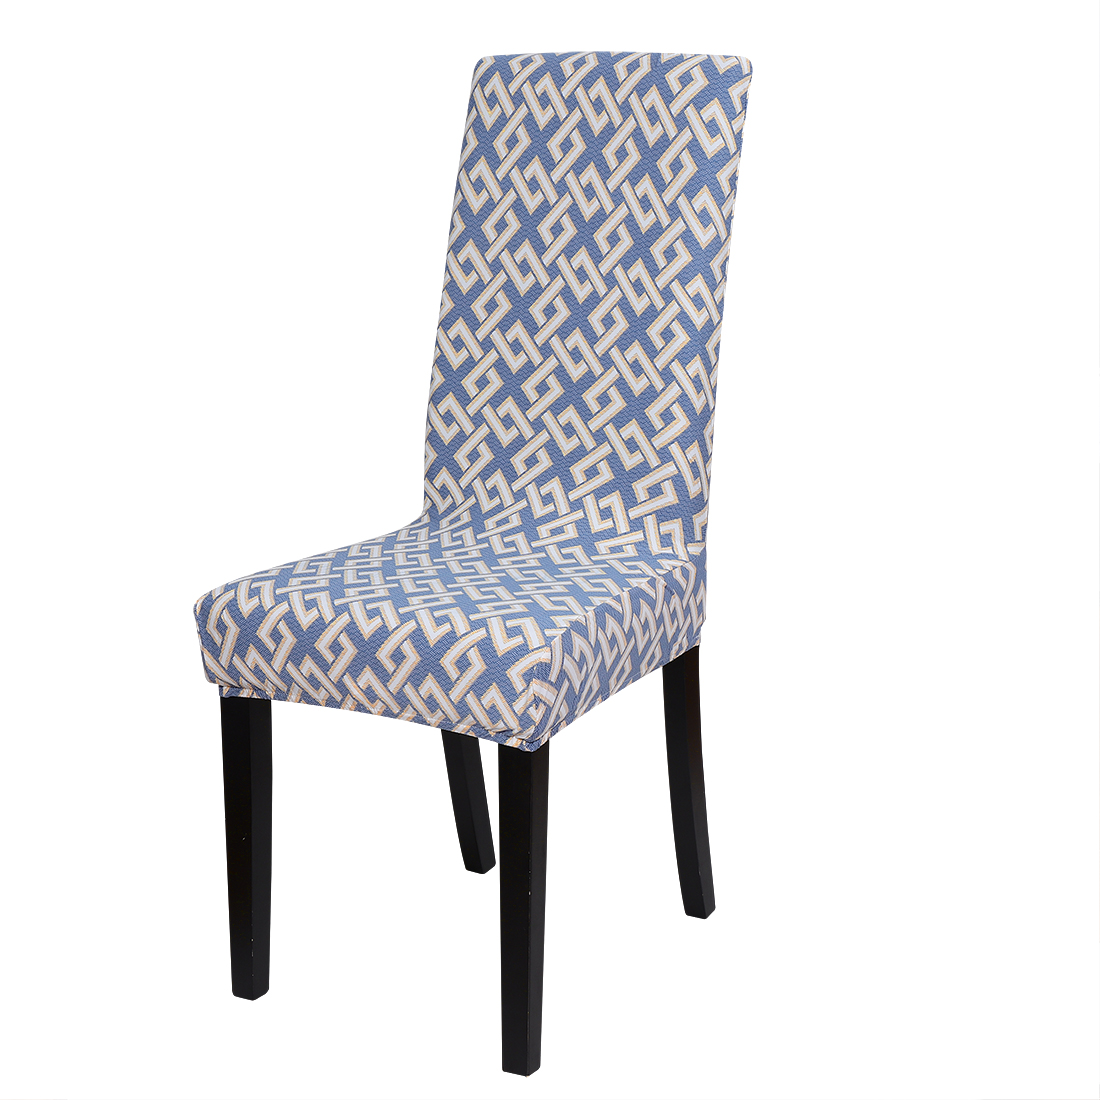 Floral Print Spandex Chair Covers Fit Home Dining Room Seat Slipcover, Style 13